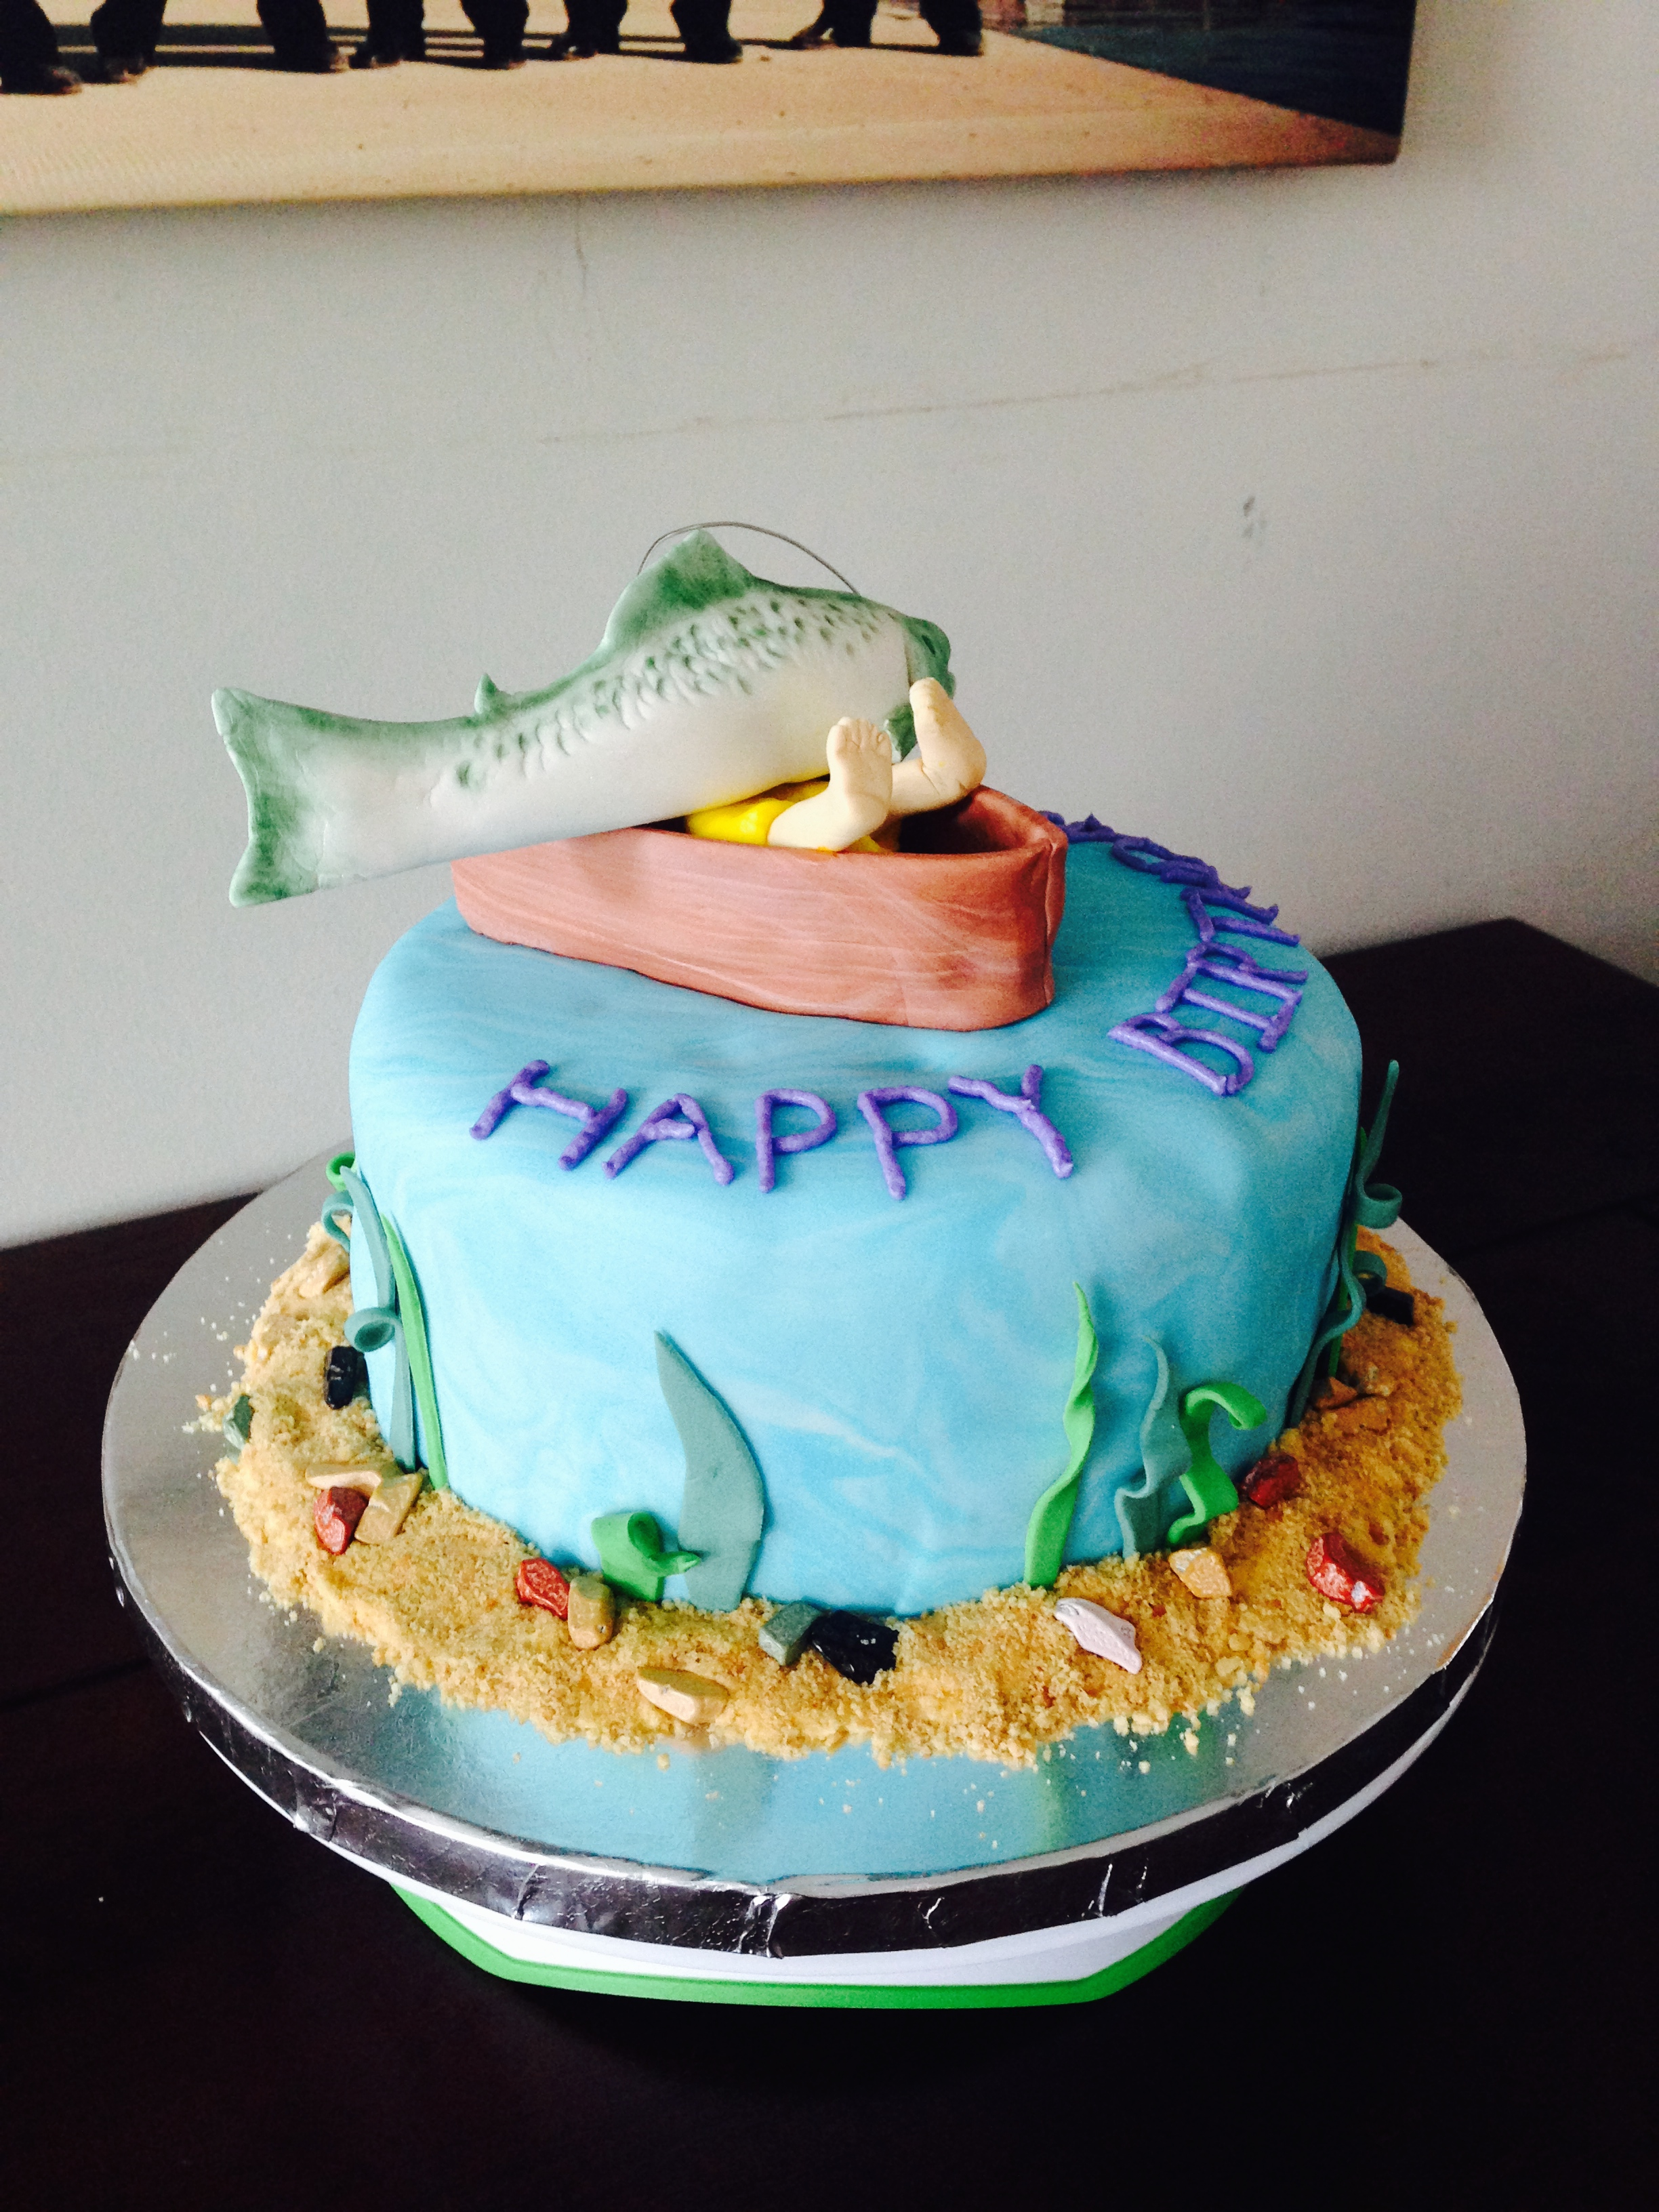 Squished Fisherman Cake